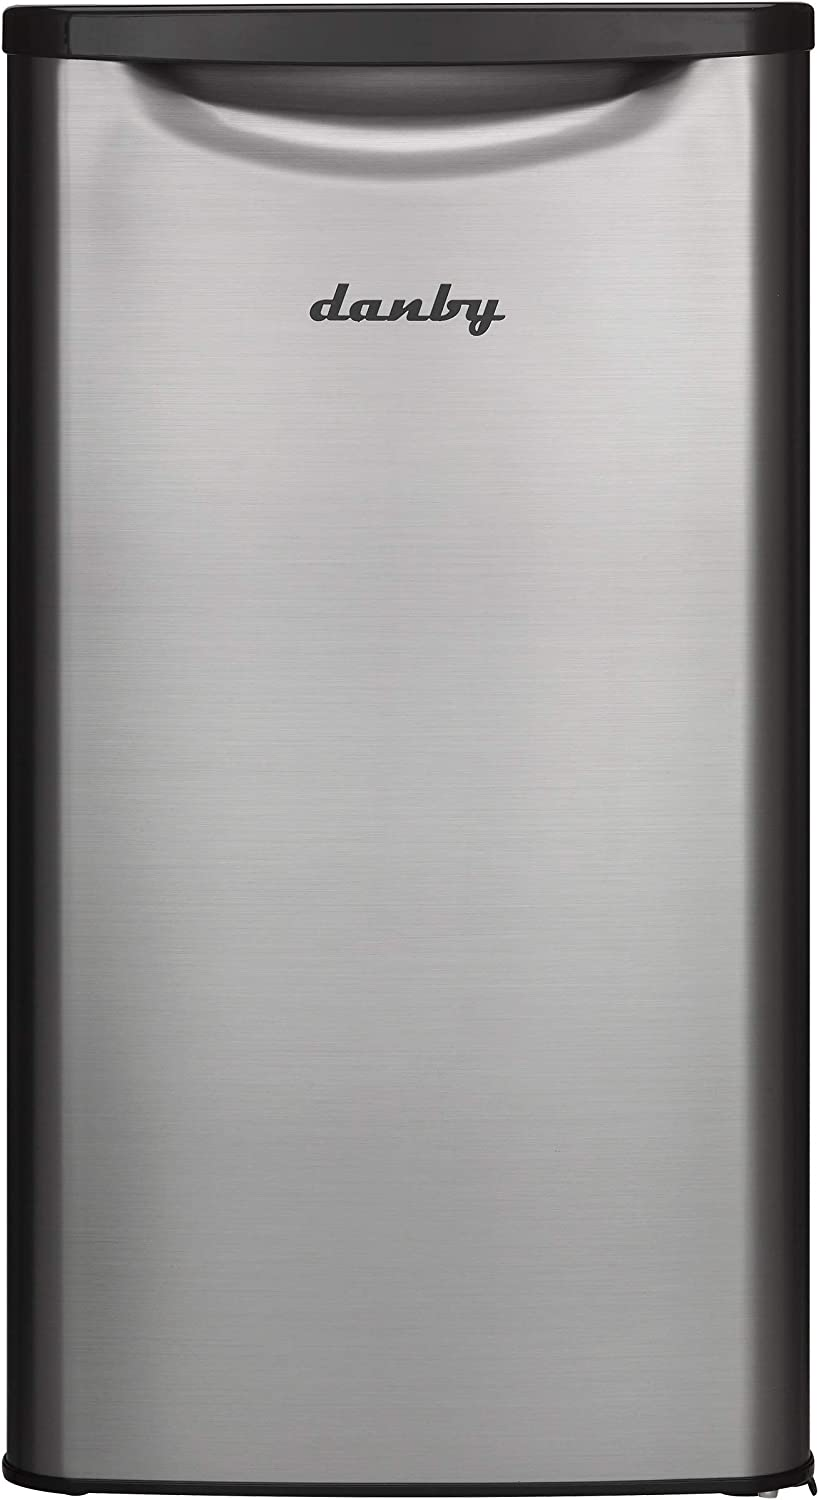 Danby DAR033A6BSLDB-6 Contemporary Classic Mini Fridge - 3.3 Cubic Foot - Stainless Look